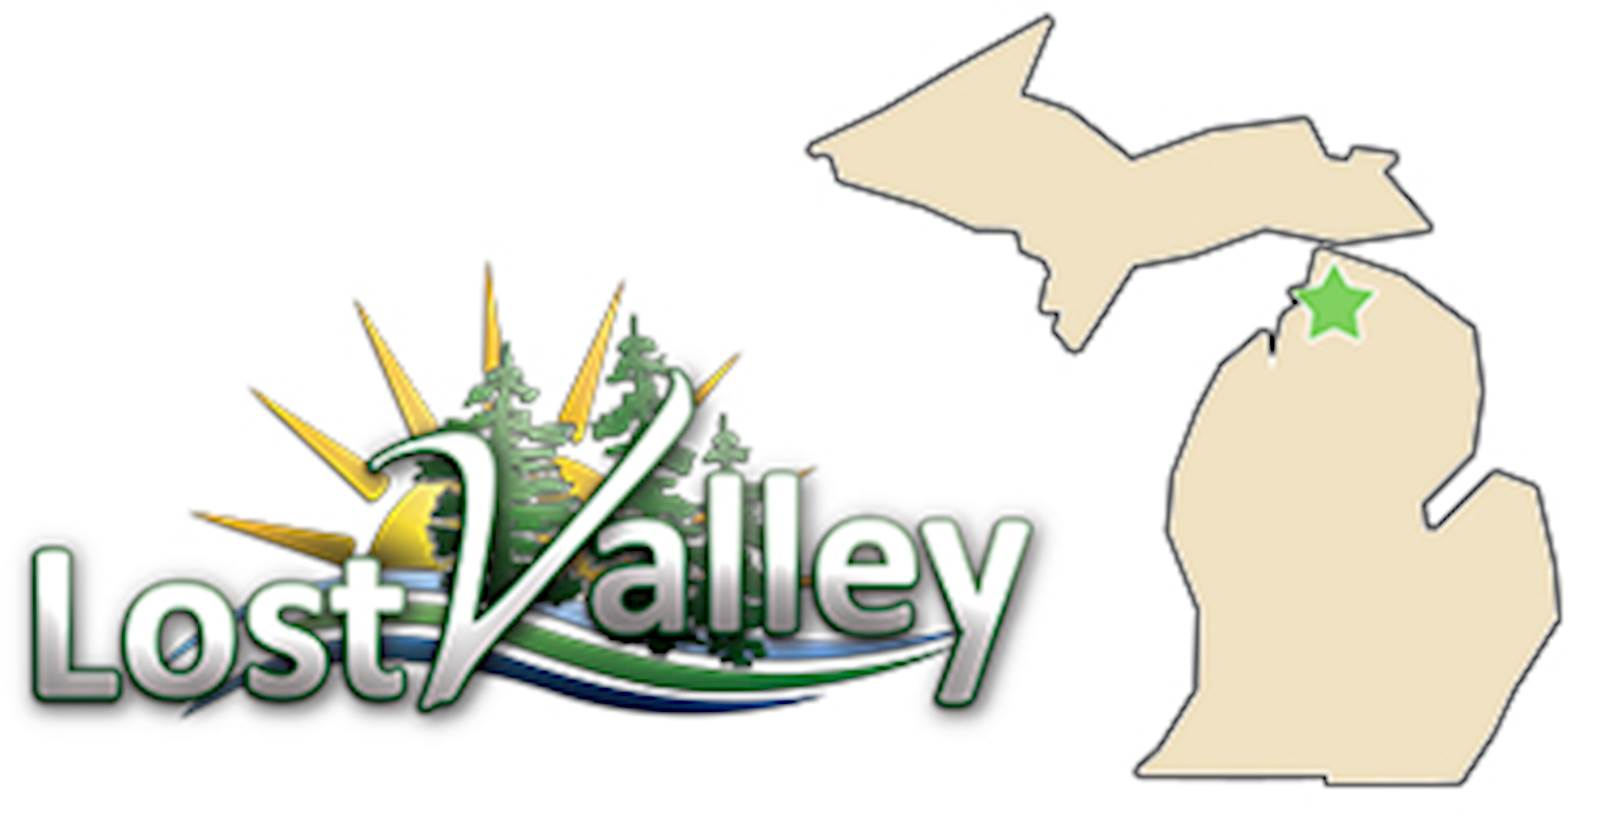 Lost Valley – Northern Michigan Retreat Center - logo and link